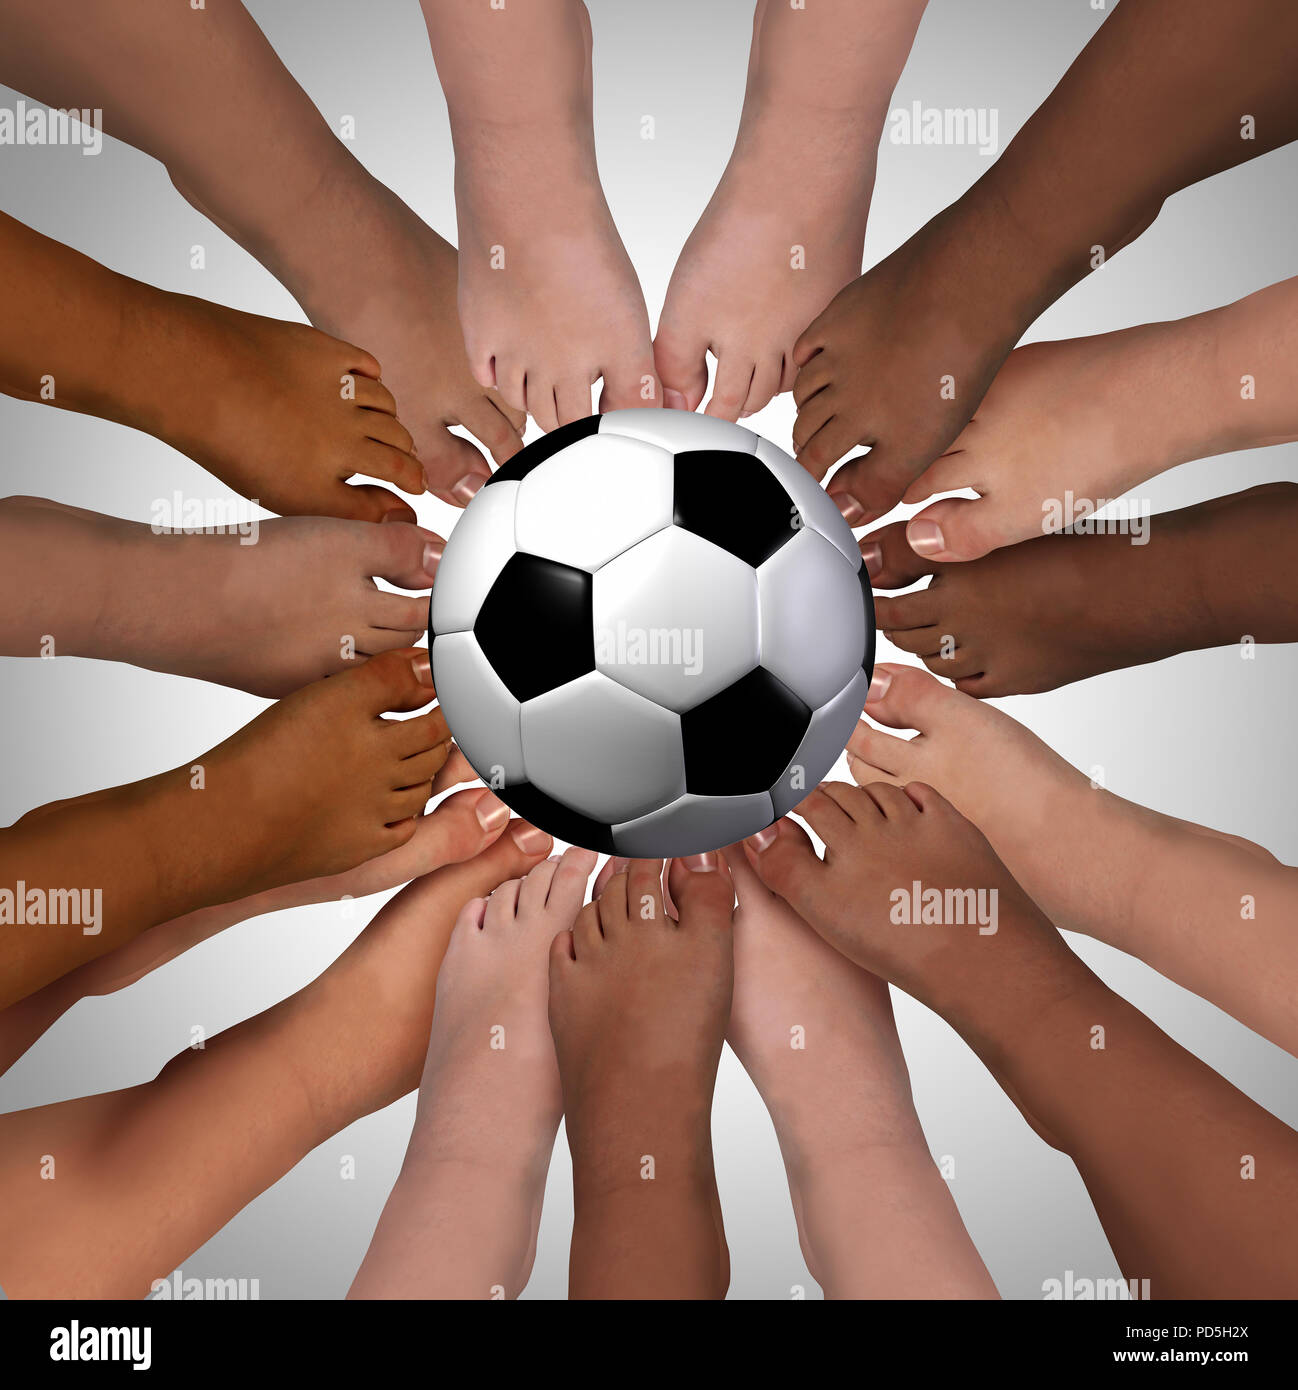 Diversity sport friendship standing together playing a team activity with 3D render elements. - Stock Image